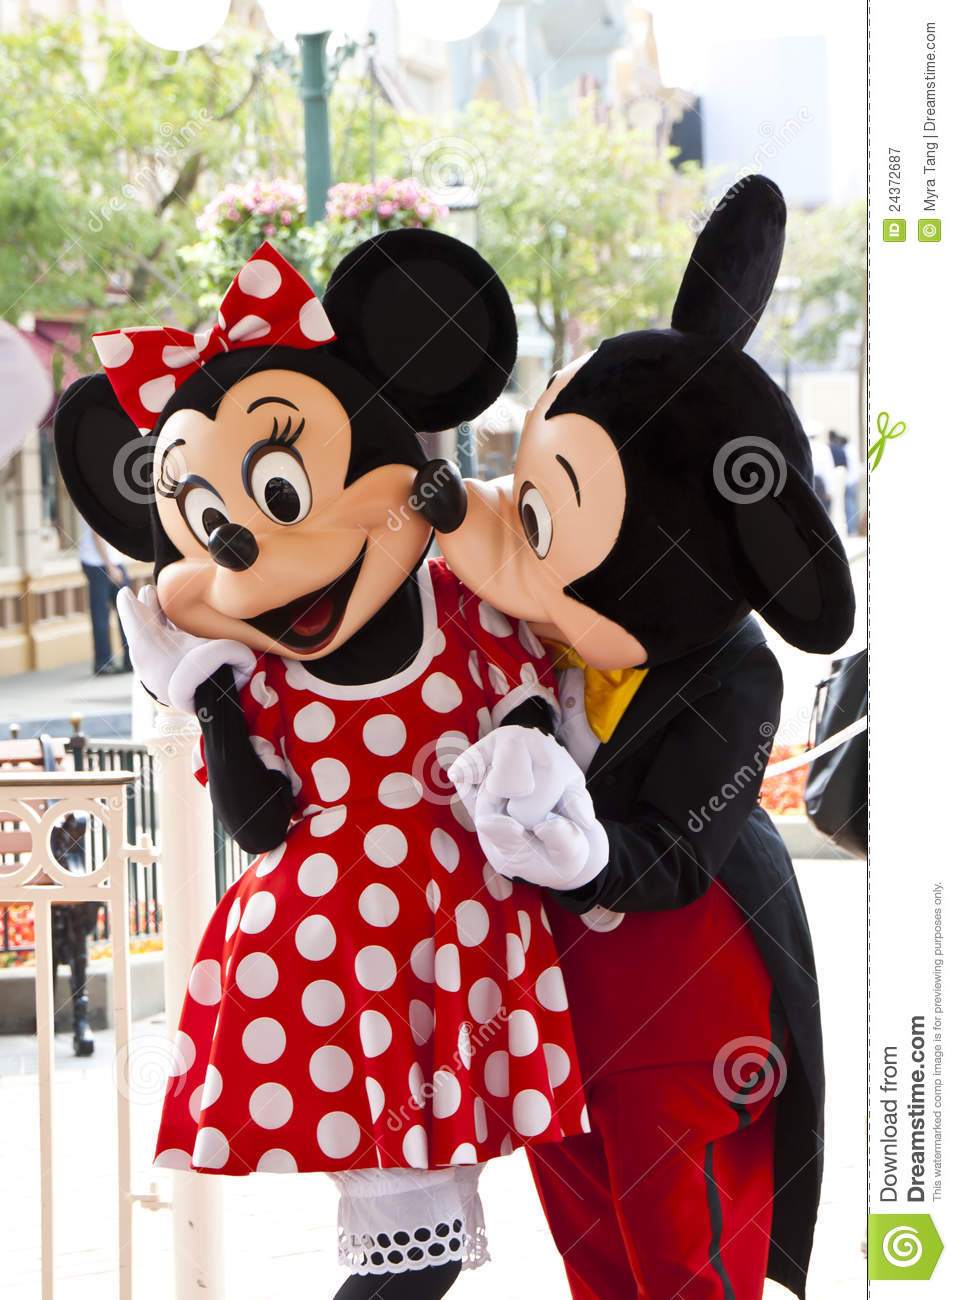 Hd Wallpaper Love Kiss Download Mickey Mouse Kisses Minnie Mouse Editorial Photography